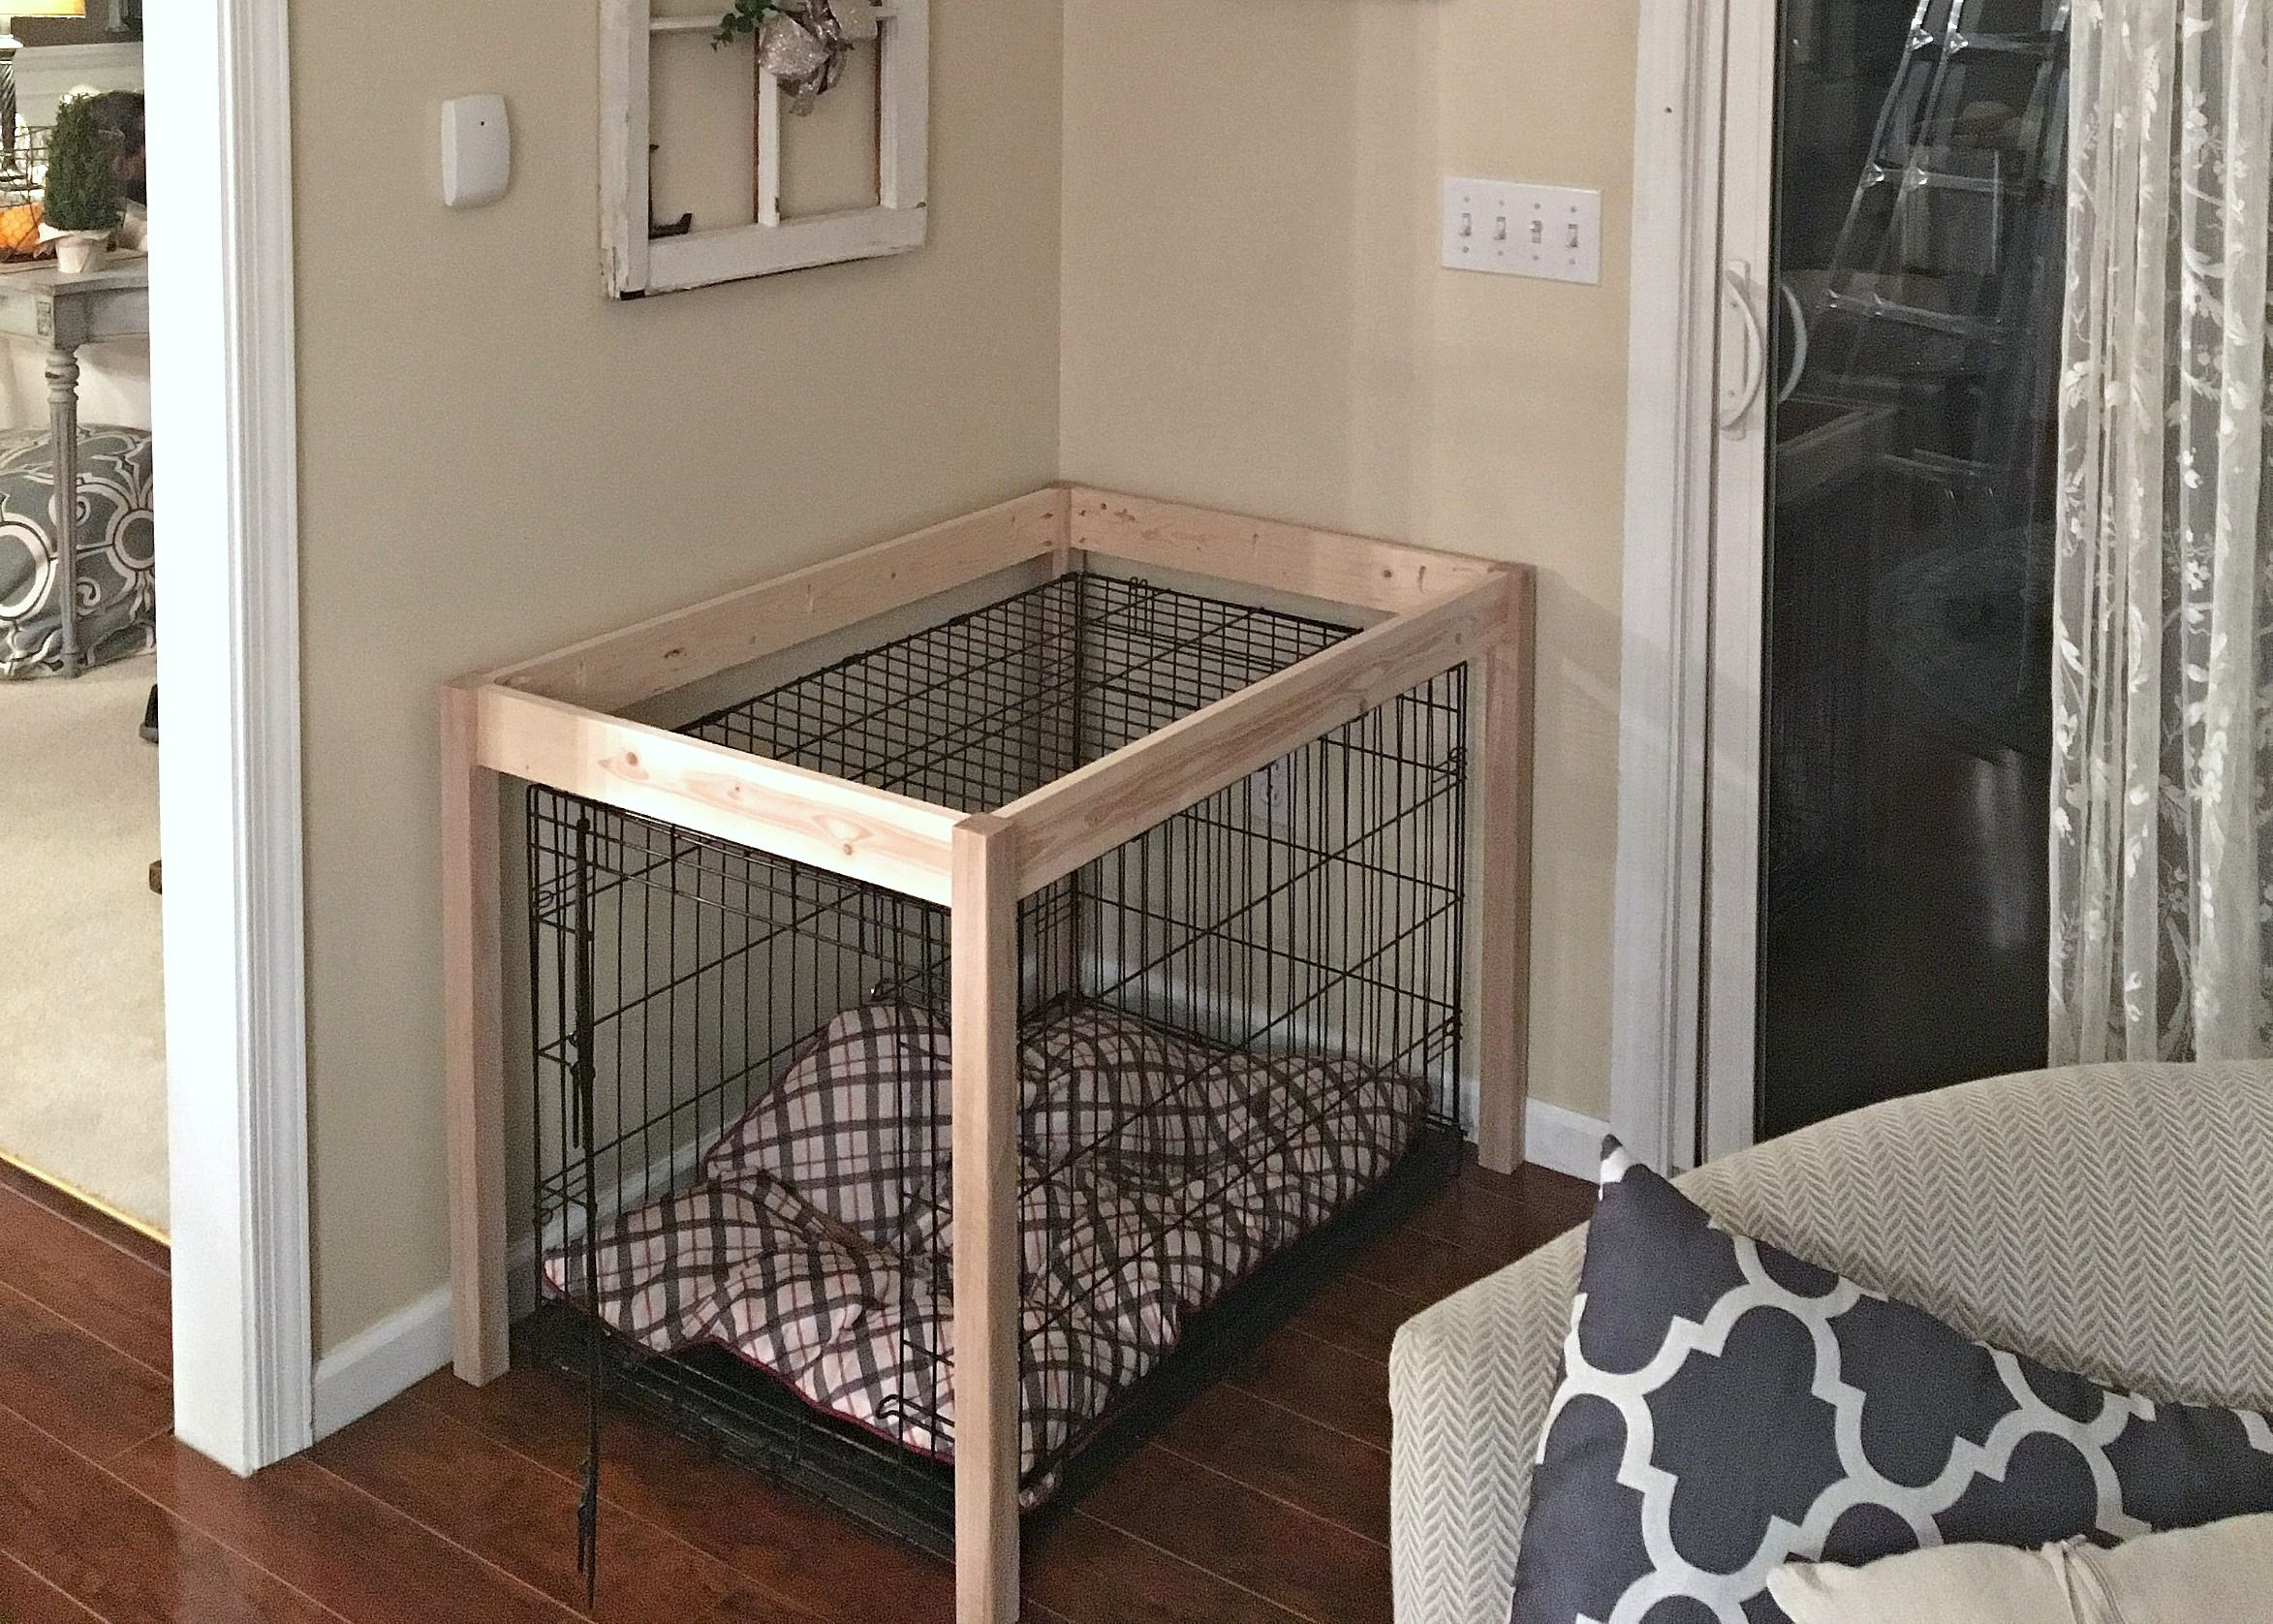 Best 25+ Diy dog crate ideas on Pinterest | Dog crate, Dog crates ...